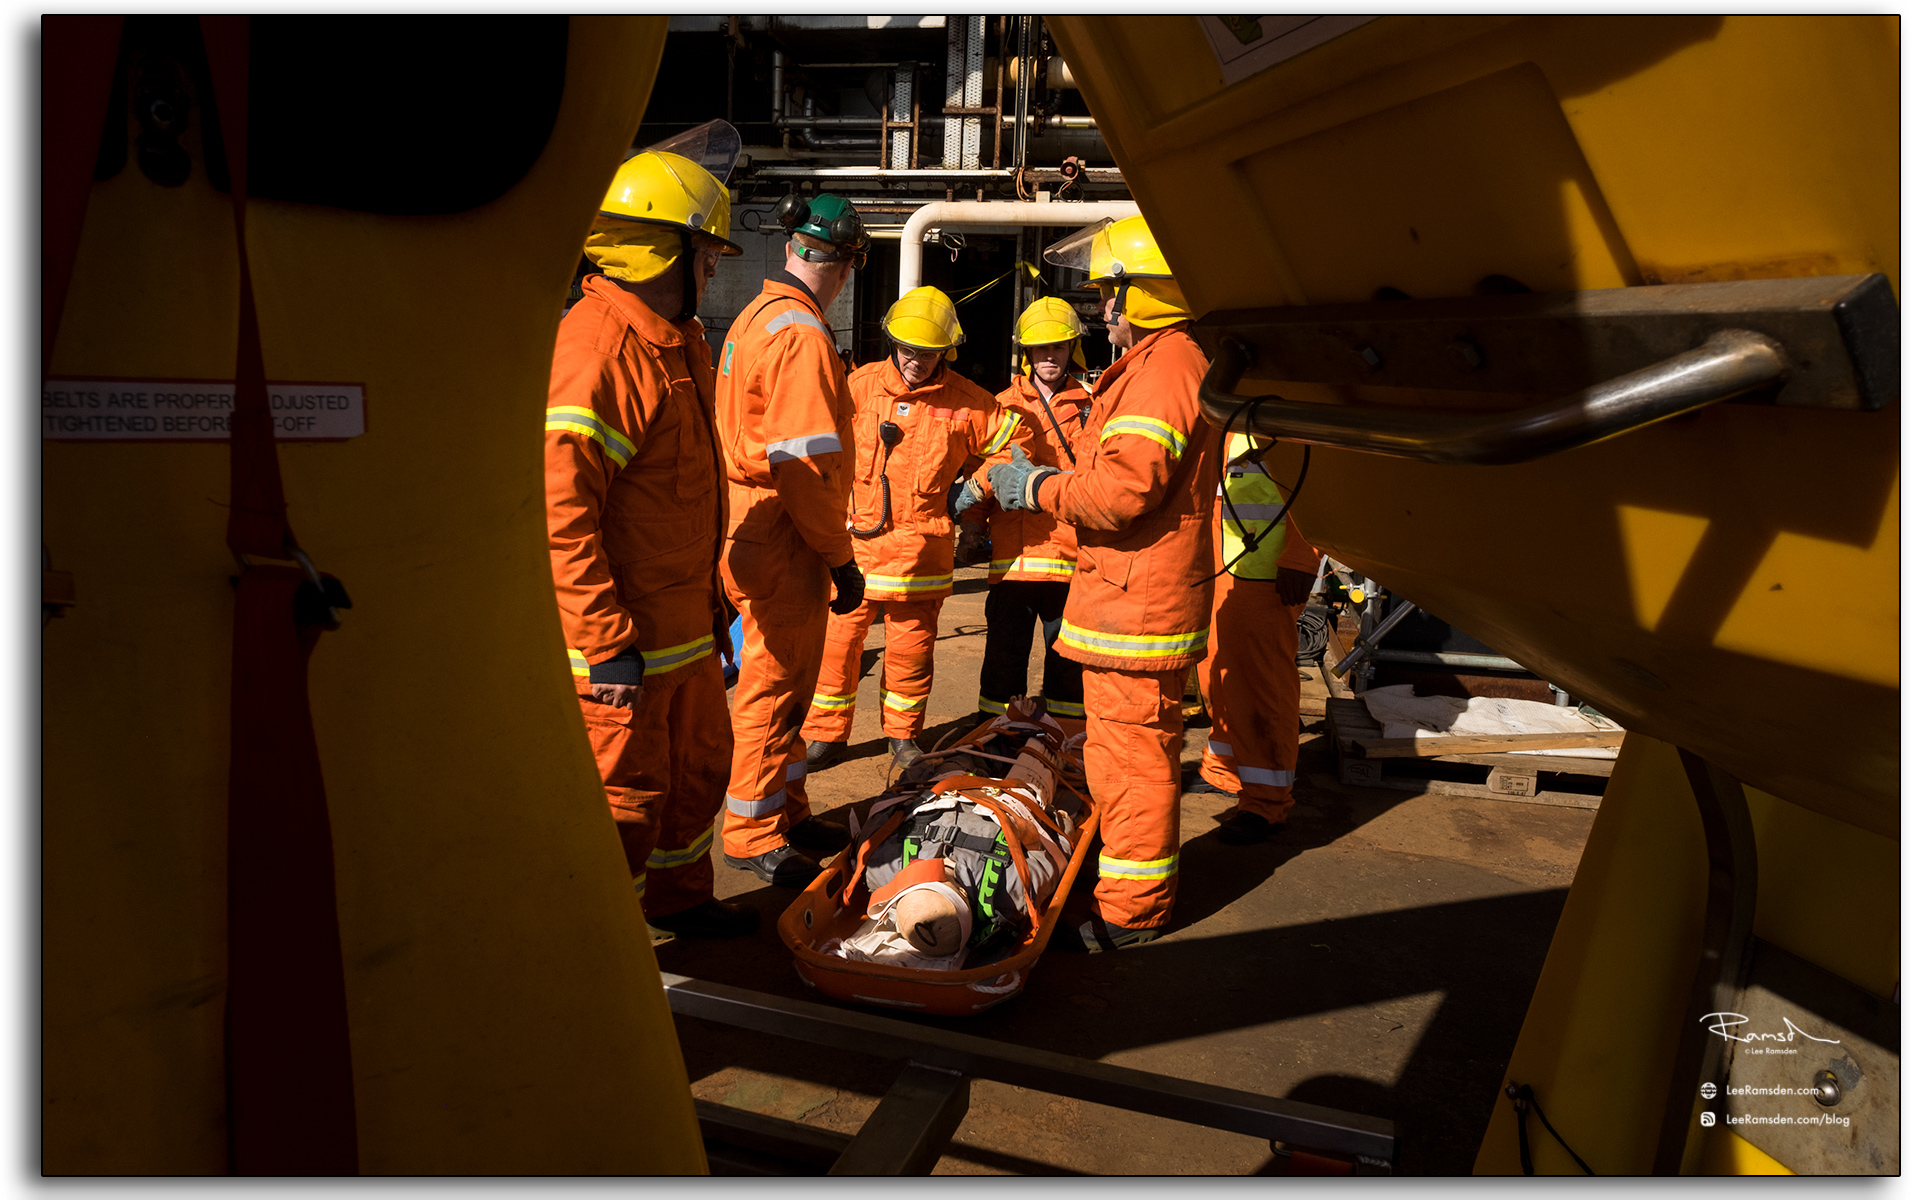 emergency response, drill, fireman, firemen, casuilty, Lee ramsden